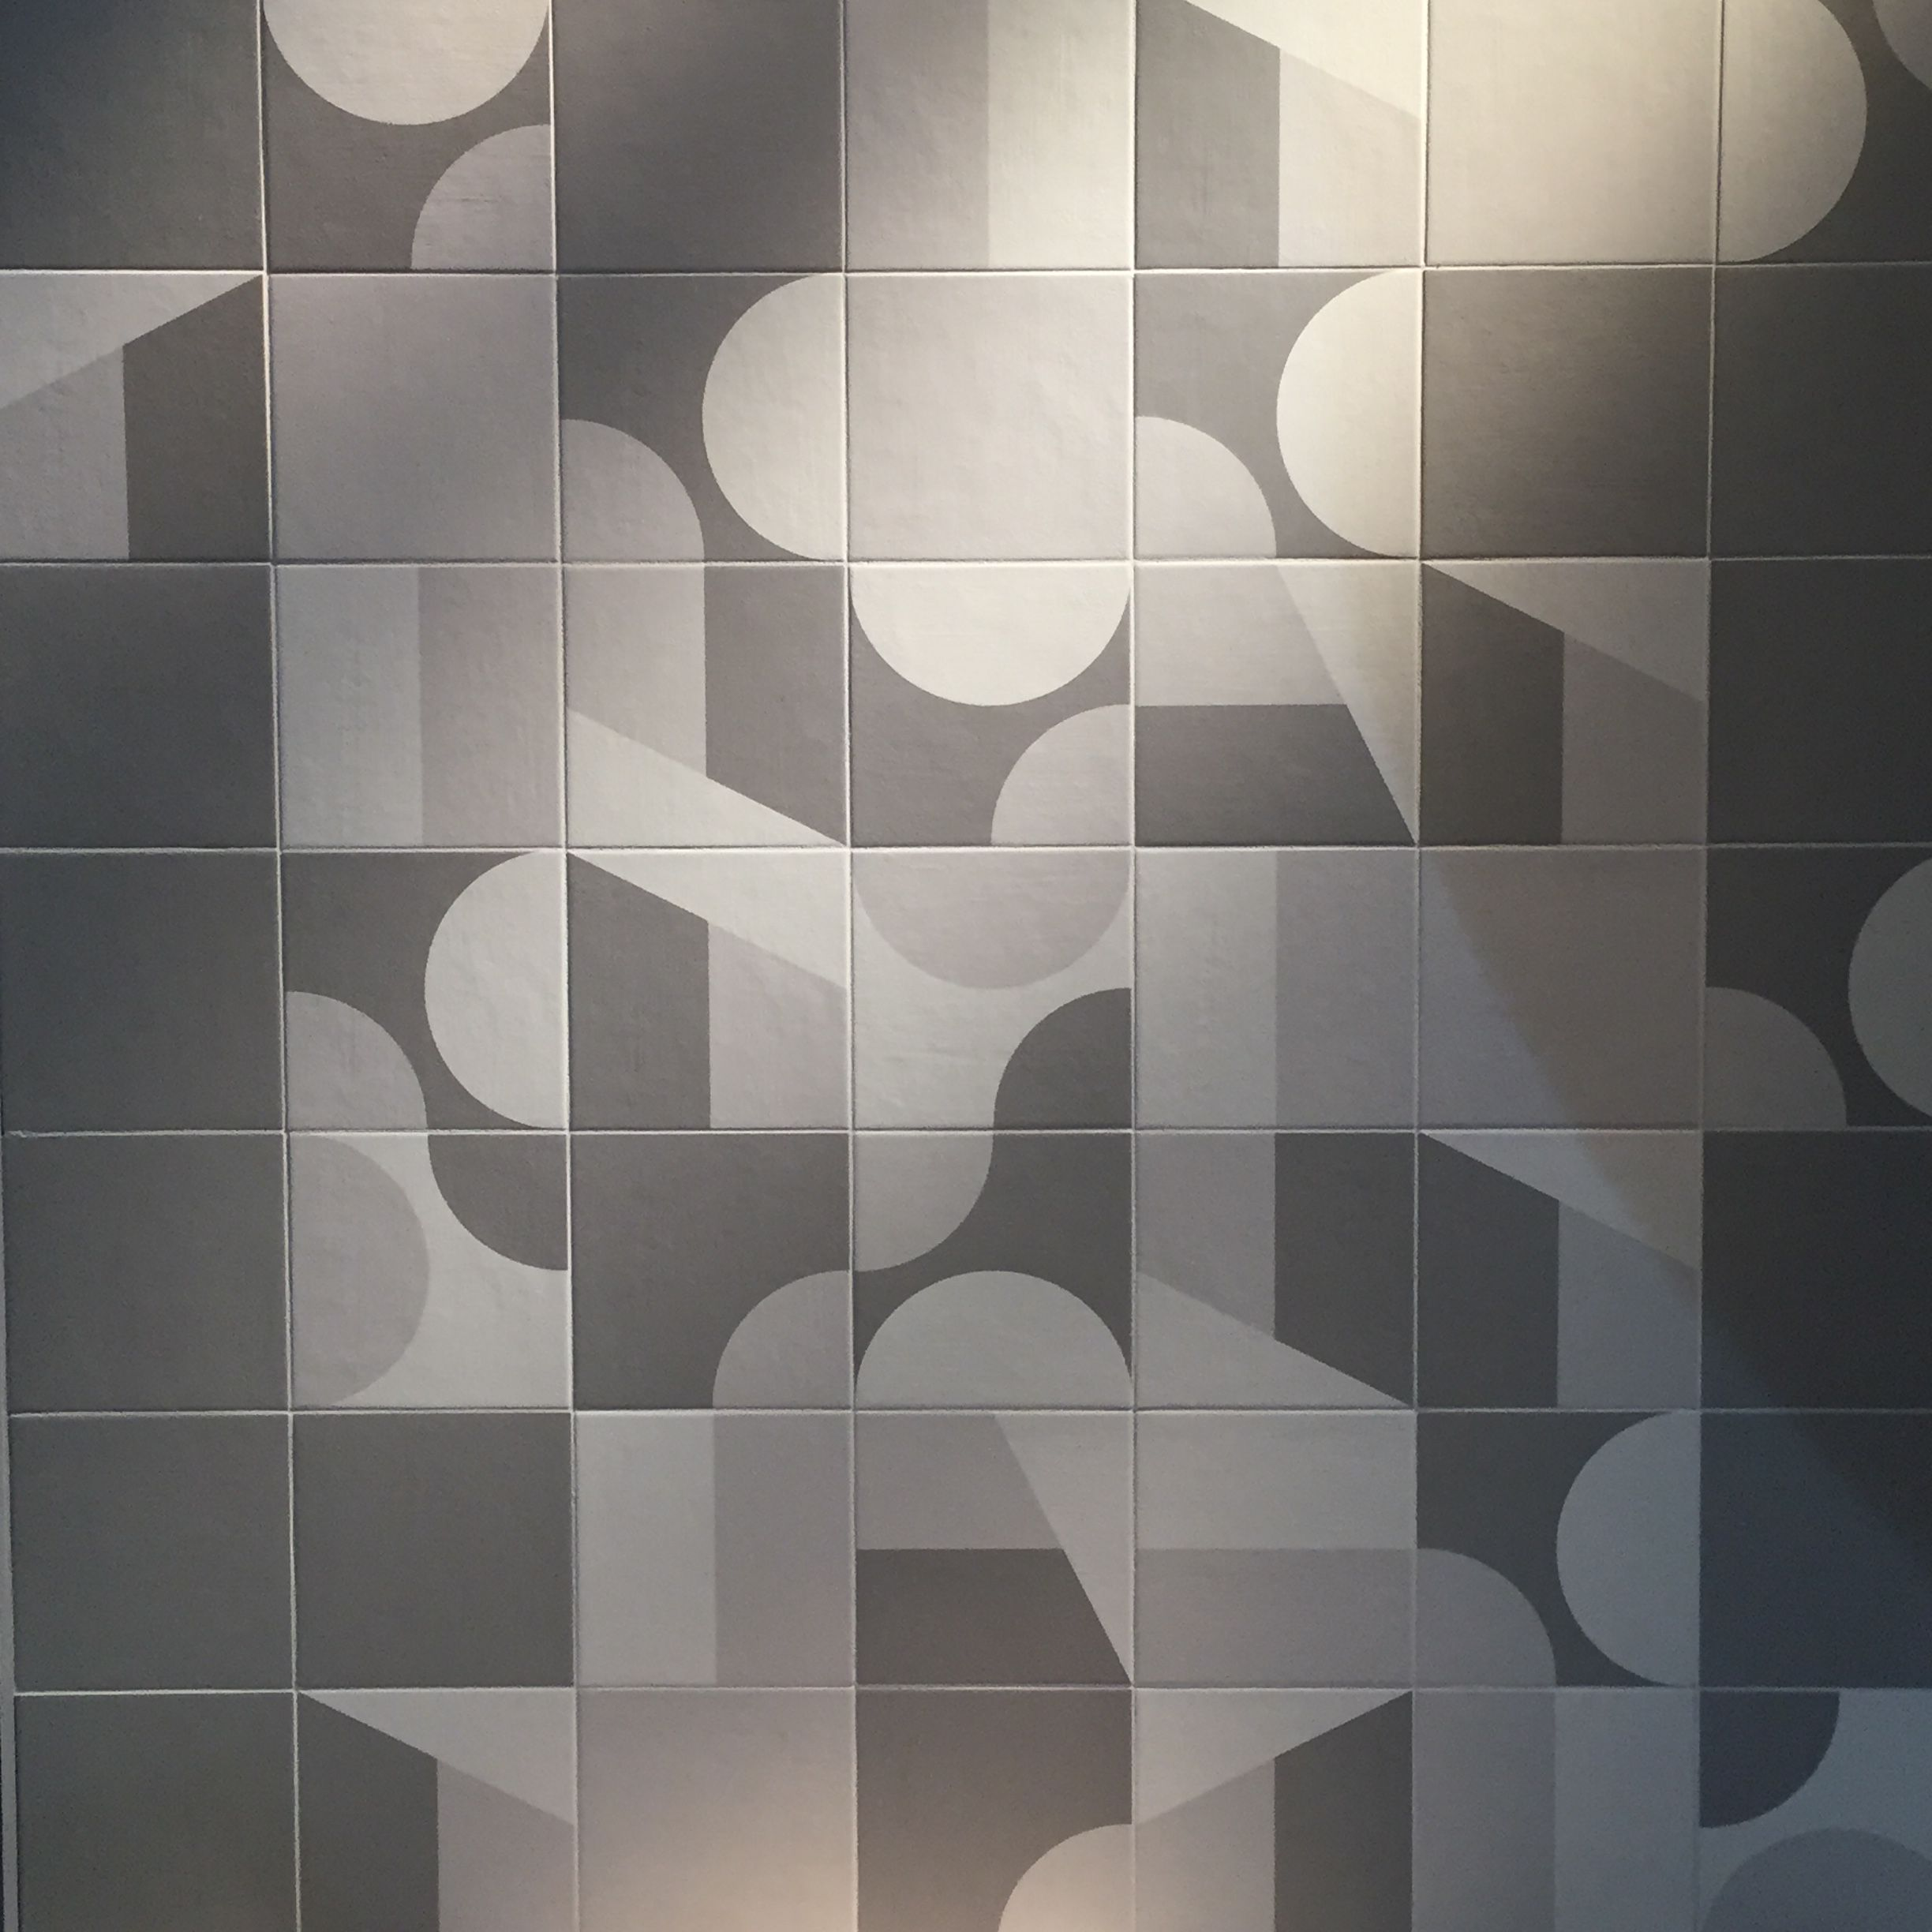 Nice 12 Inch Ceramic Tile Huge 12 Inch Floor Tiles Clean 12 X 12 Ceiling Tile 1200 X 1200 Floor Tiles Old 12X24 Floor Tile Patterns Coloured18 Inch Floor Tile Great Images Of Puzzle Floor Tile   Glitterandgarland